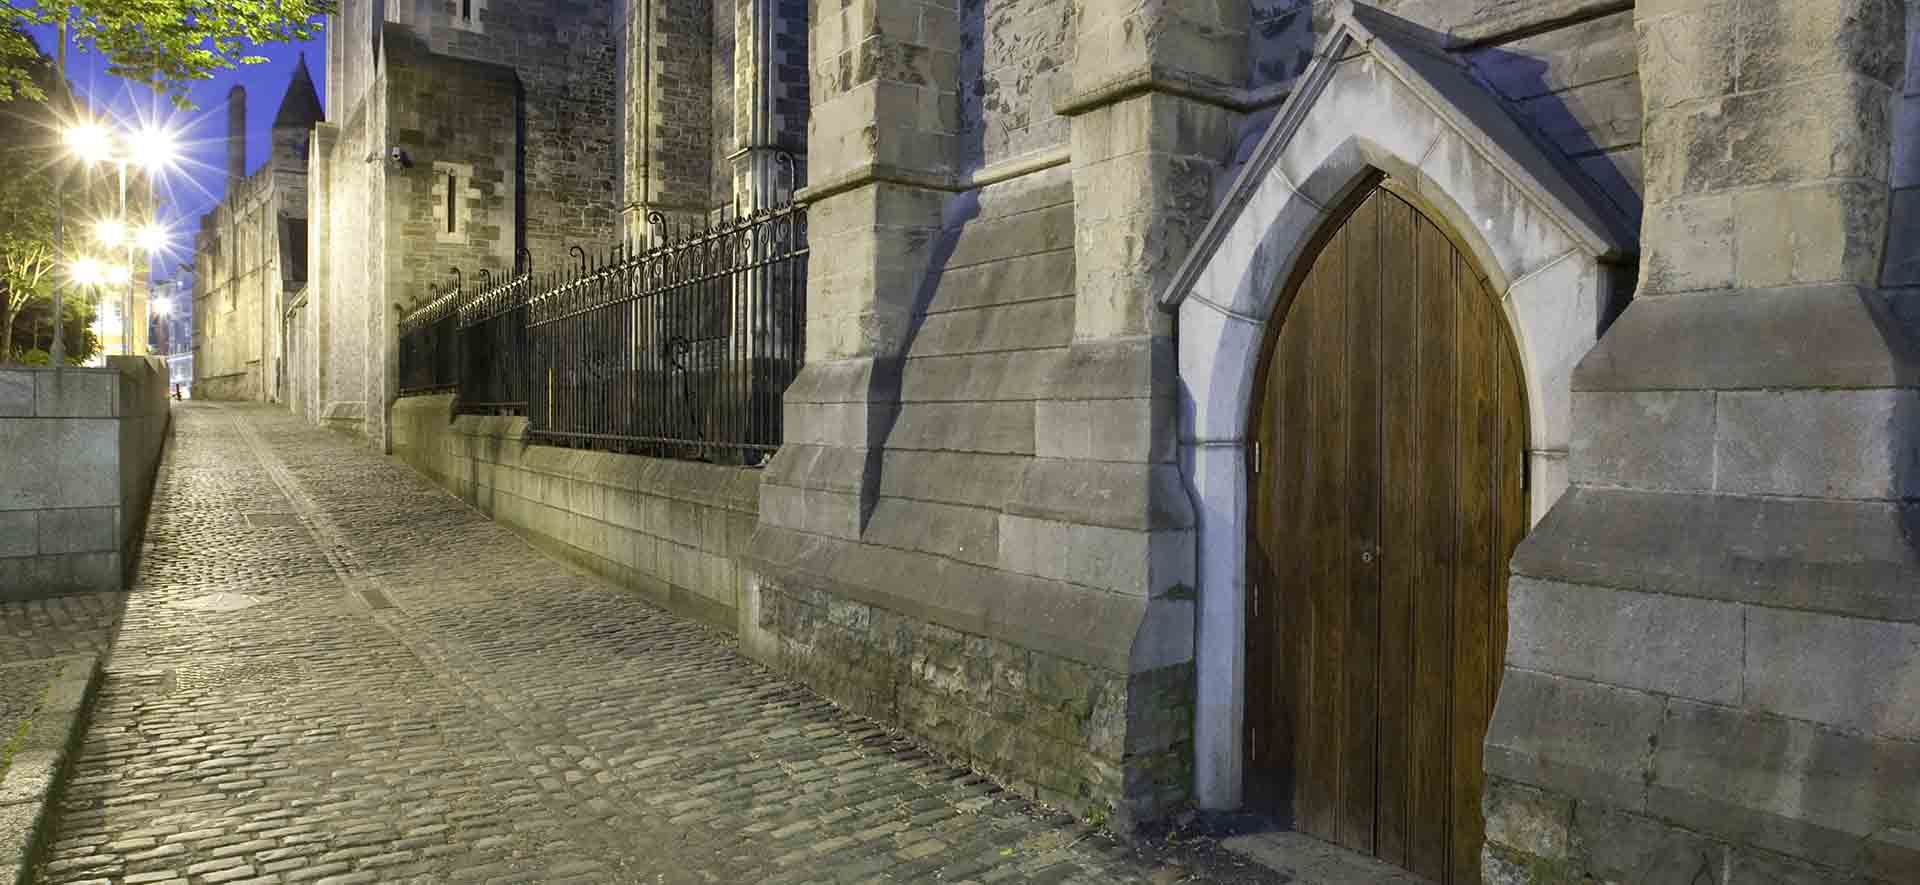 Worship ban in Ireland – doors remain closed over Easter